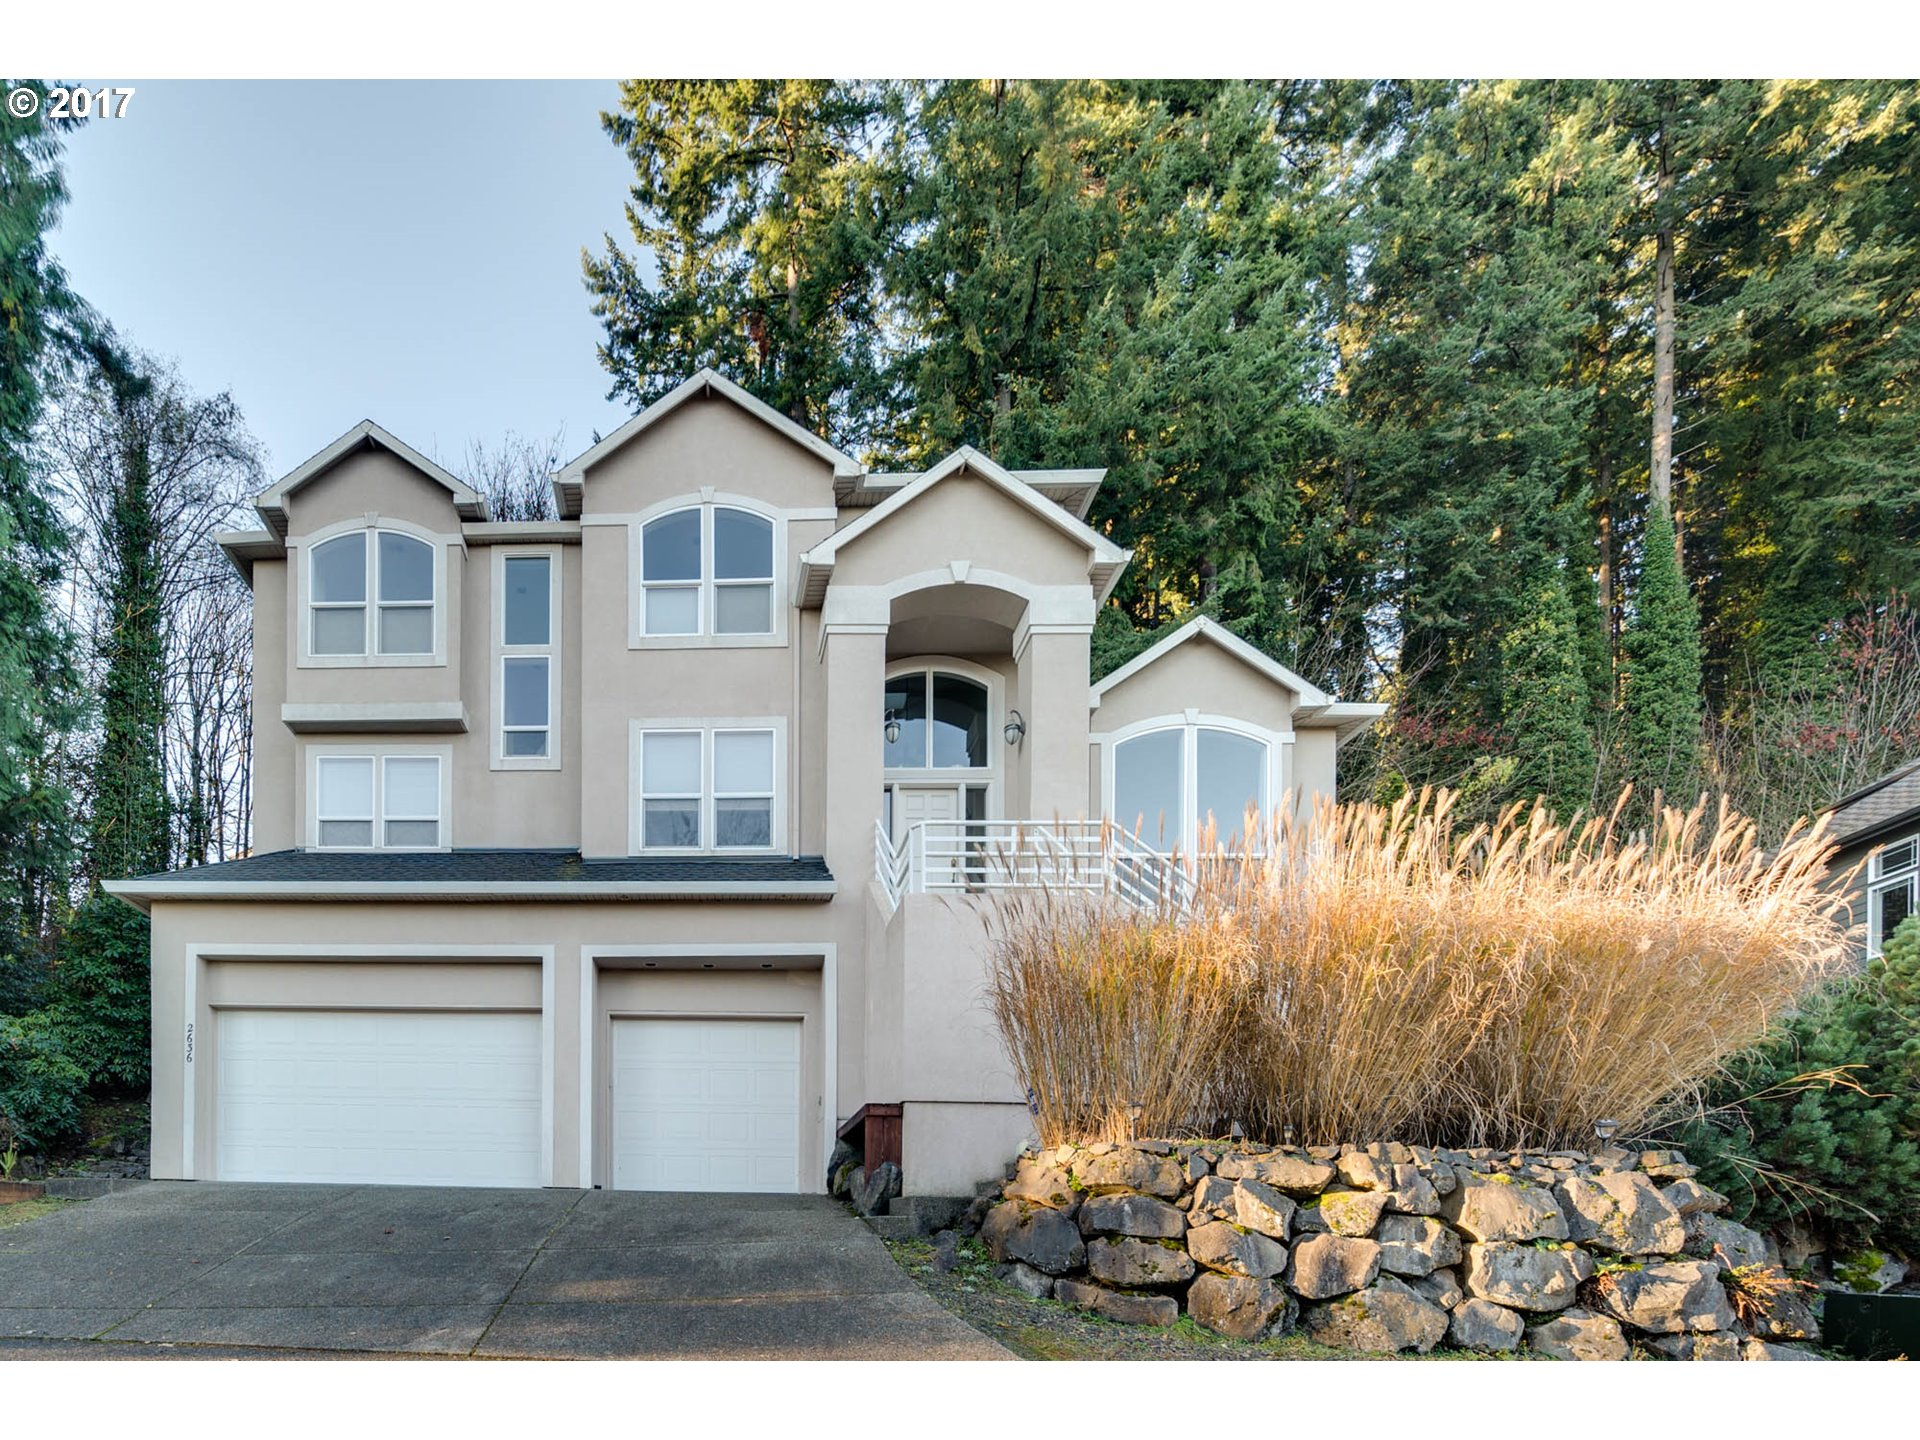 2636 PIMLICO DR, West Linn, OR 97068